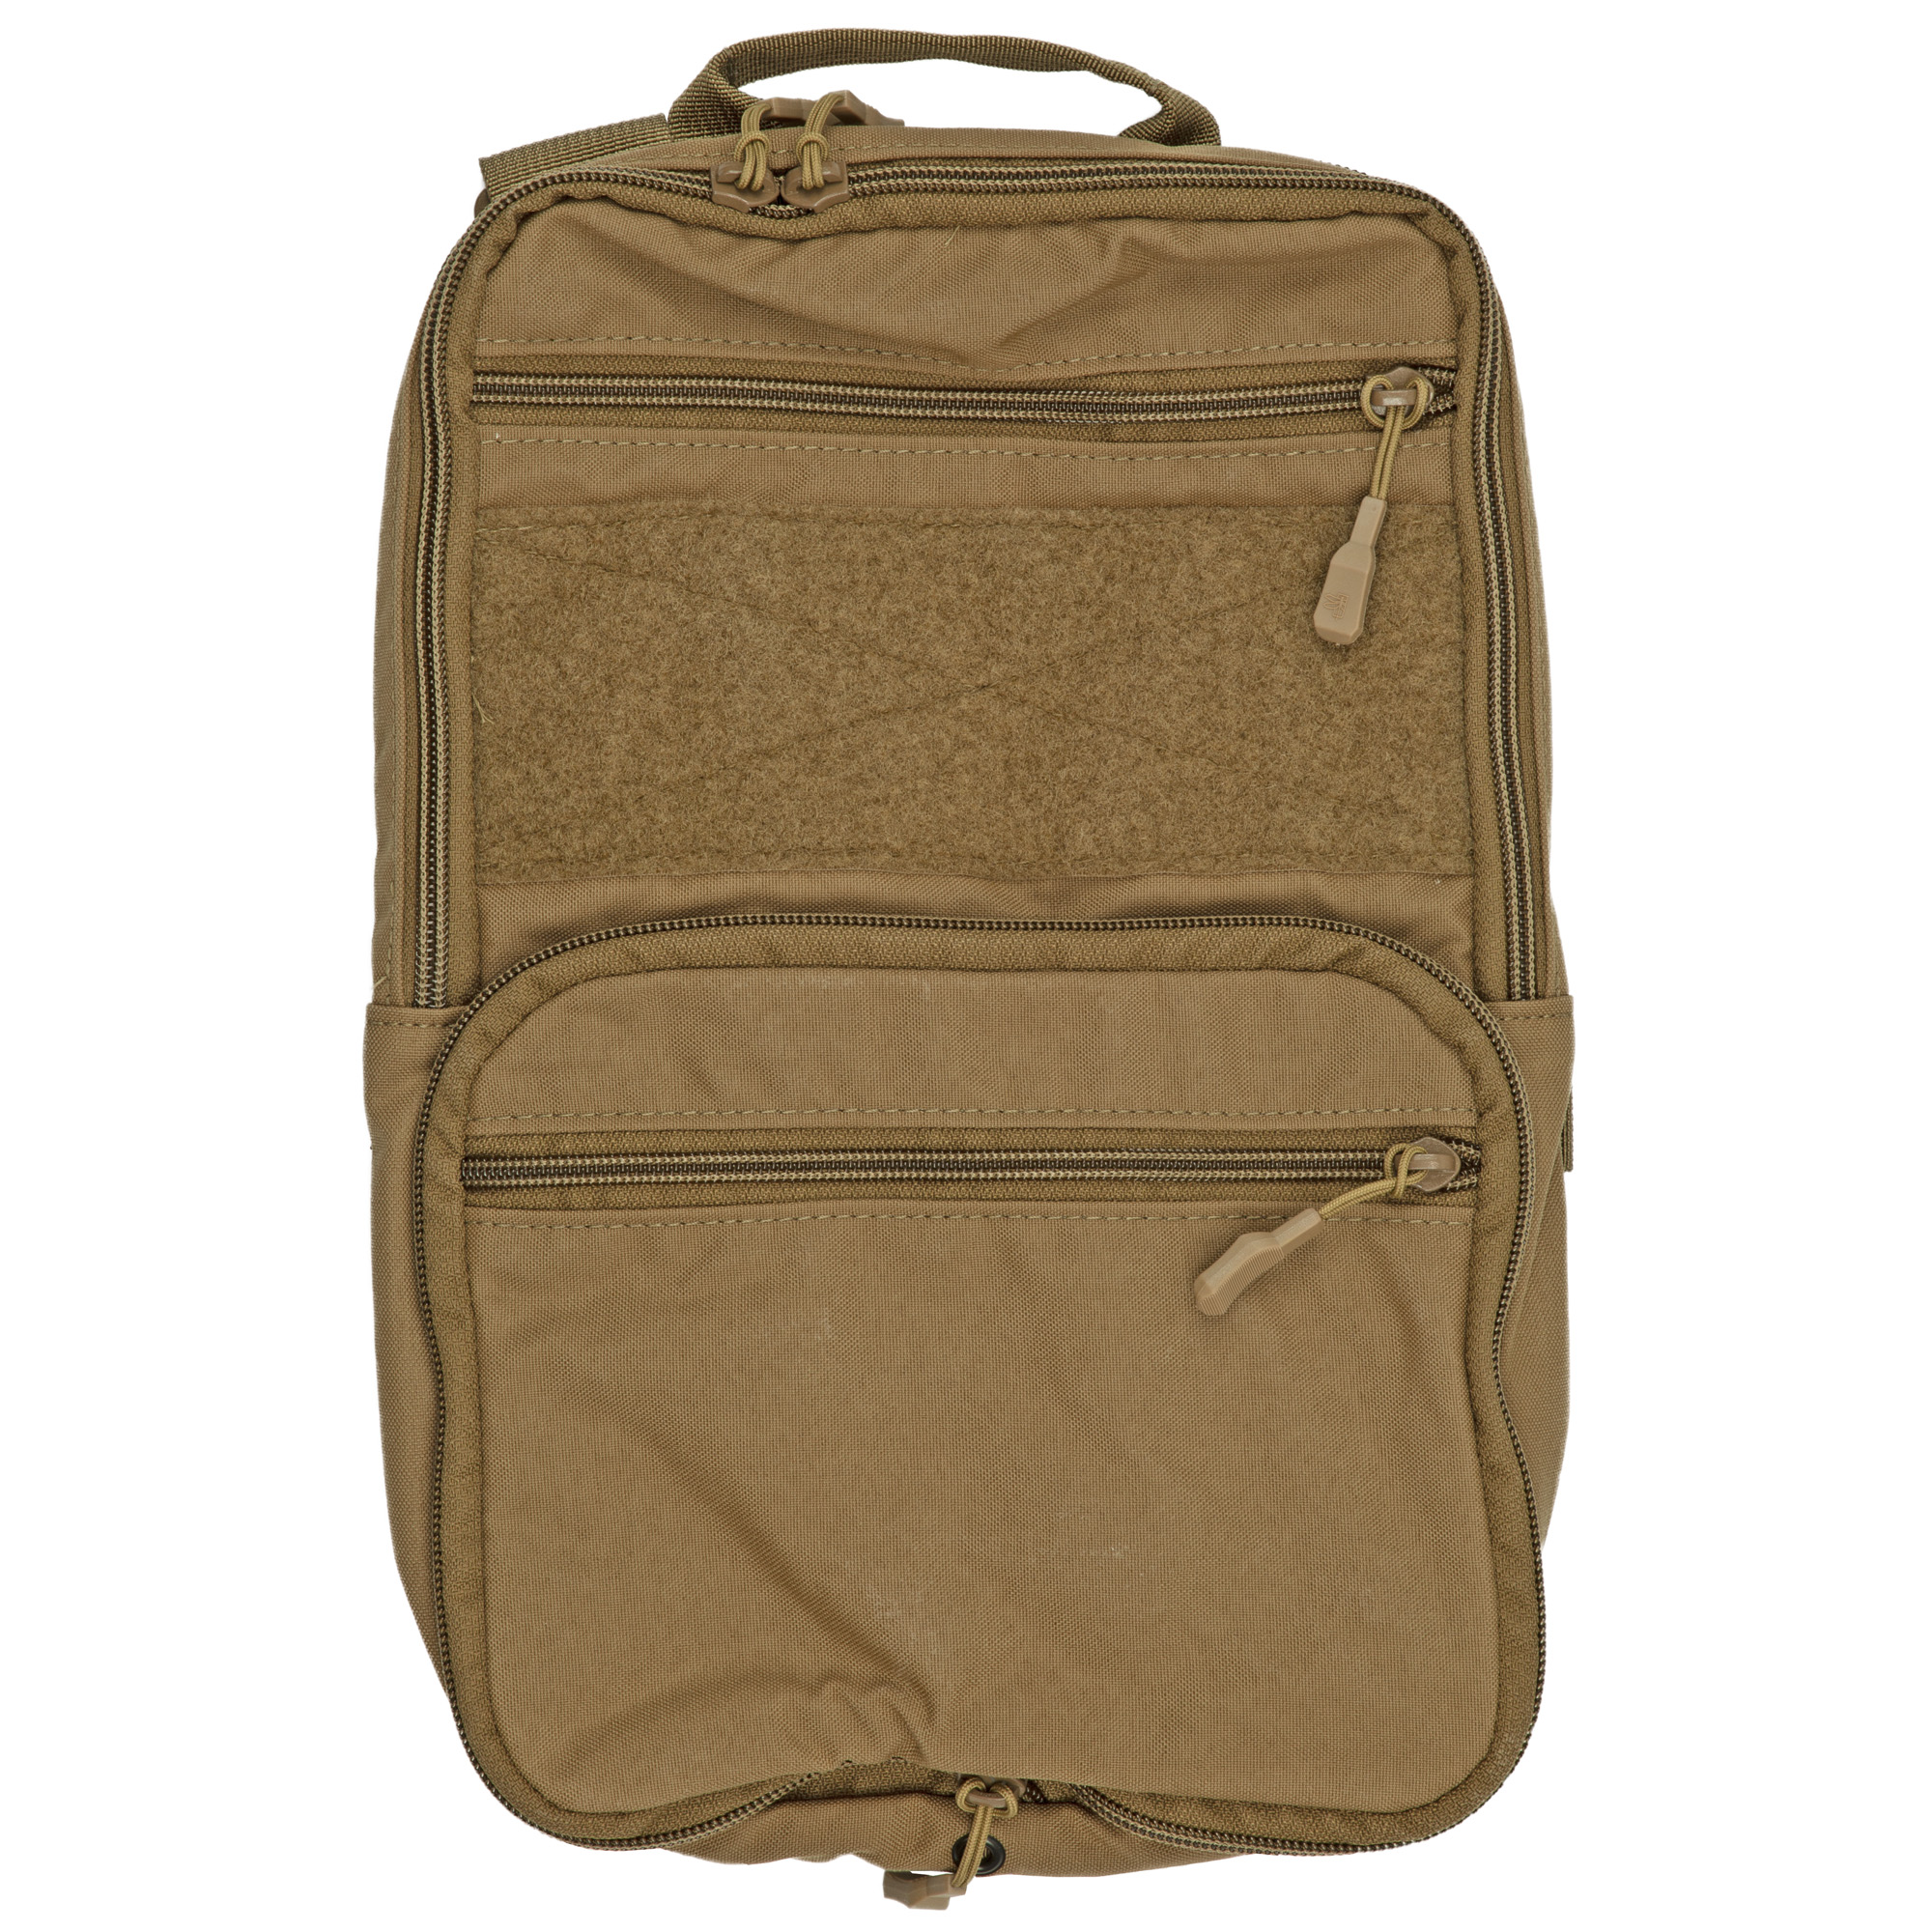 """Designed with a unique expandable gusset system"""" the D3 FlatPack is an assault pack that can go from an almost flat profile when compressed to 600 cubic inches when completely expanded."""